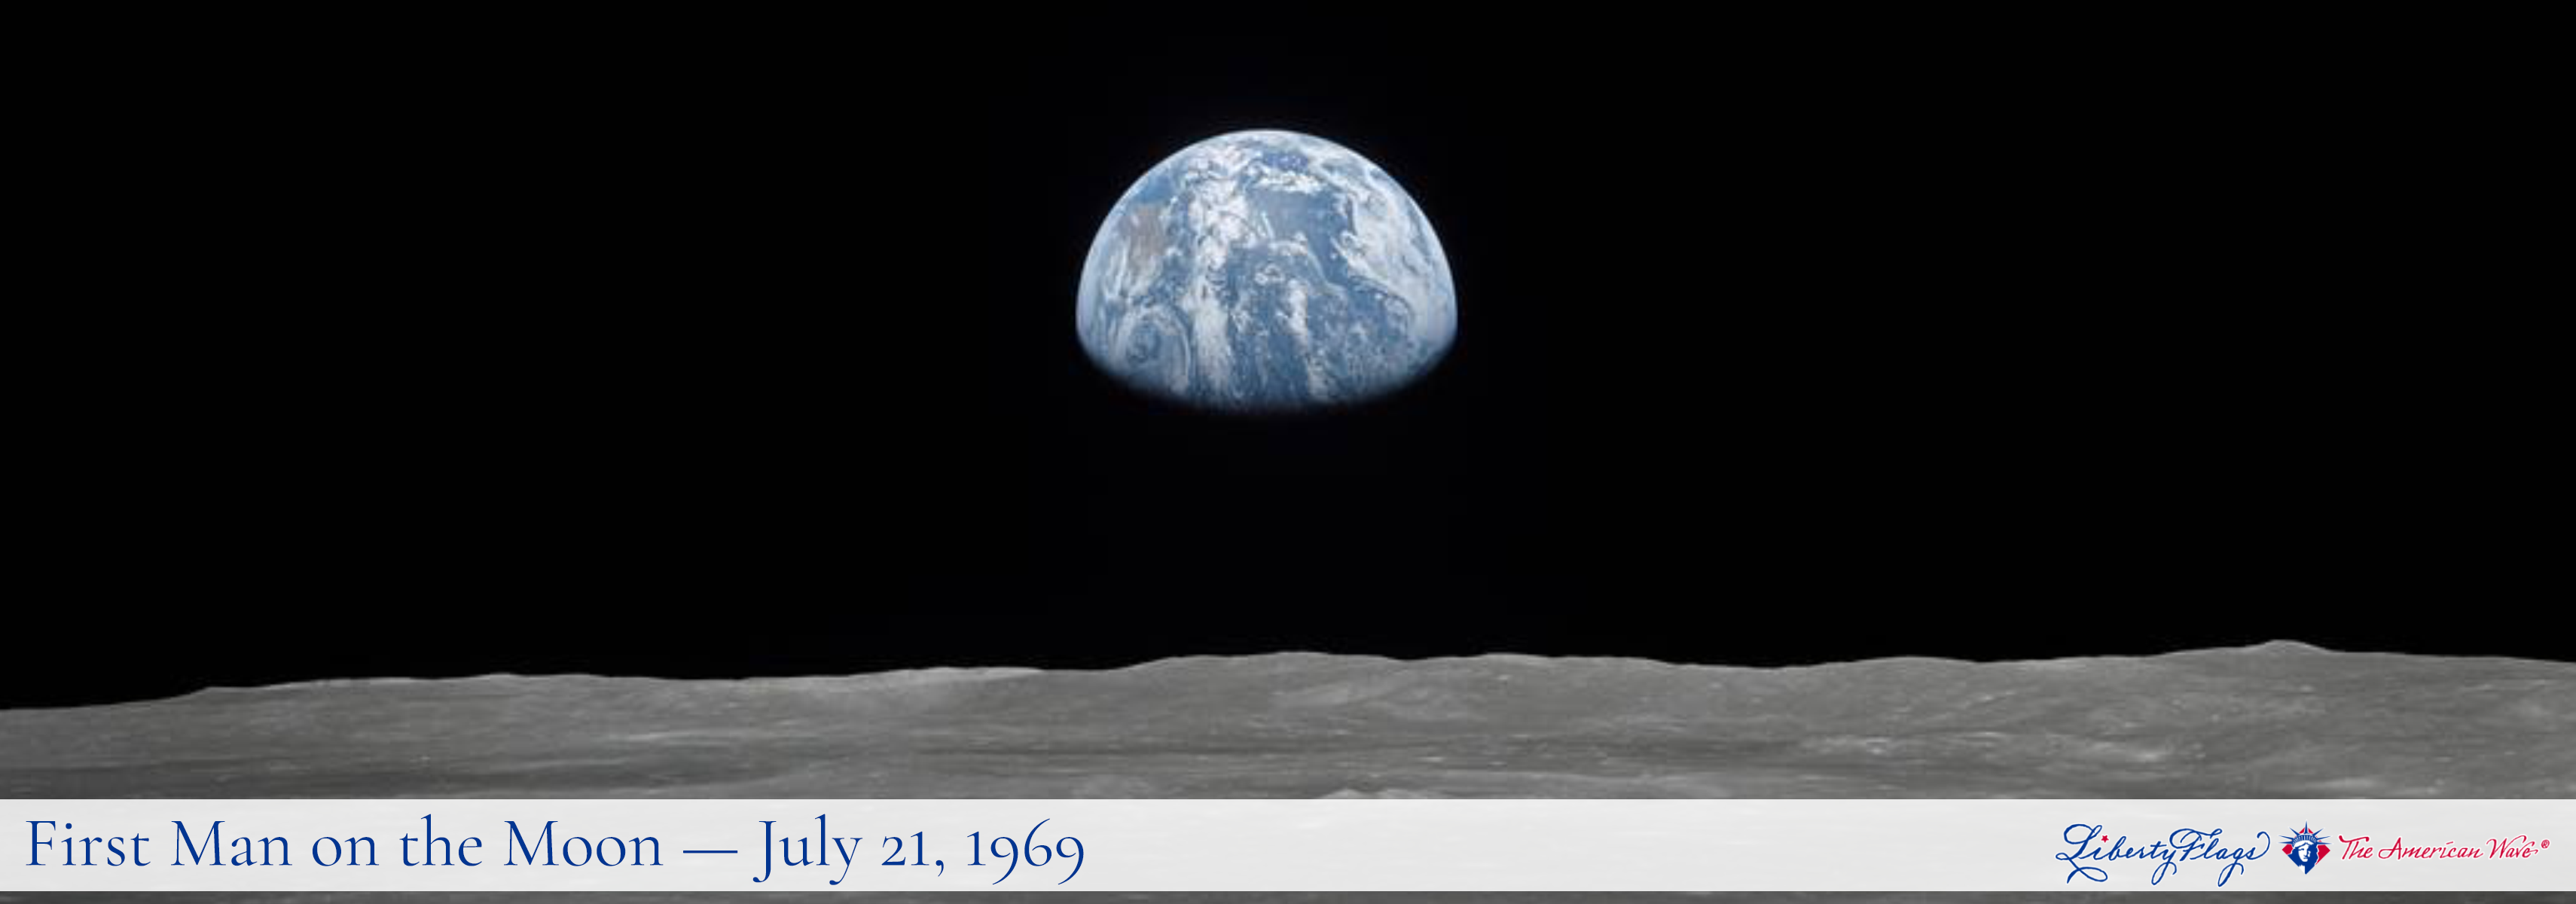 Earth as seen from the Moon, with LIBERTY FLAGS, The American Wave®